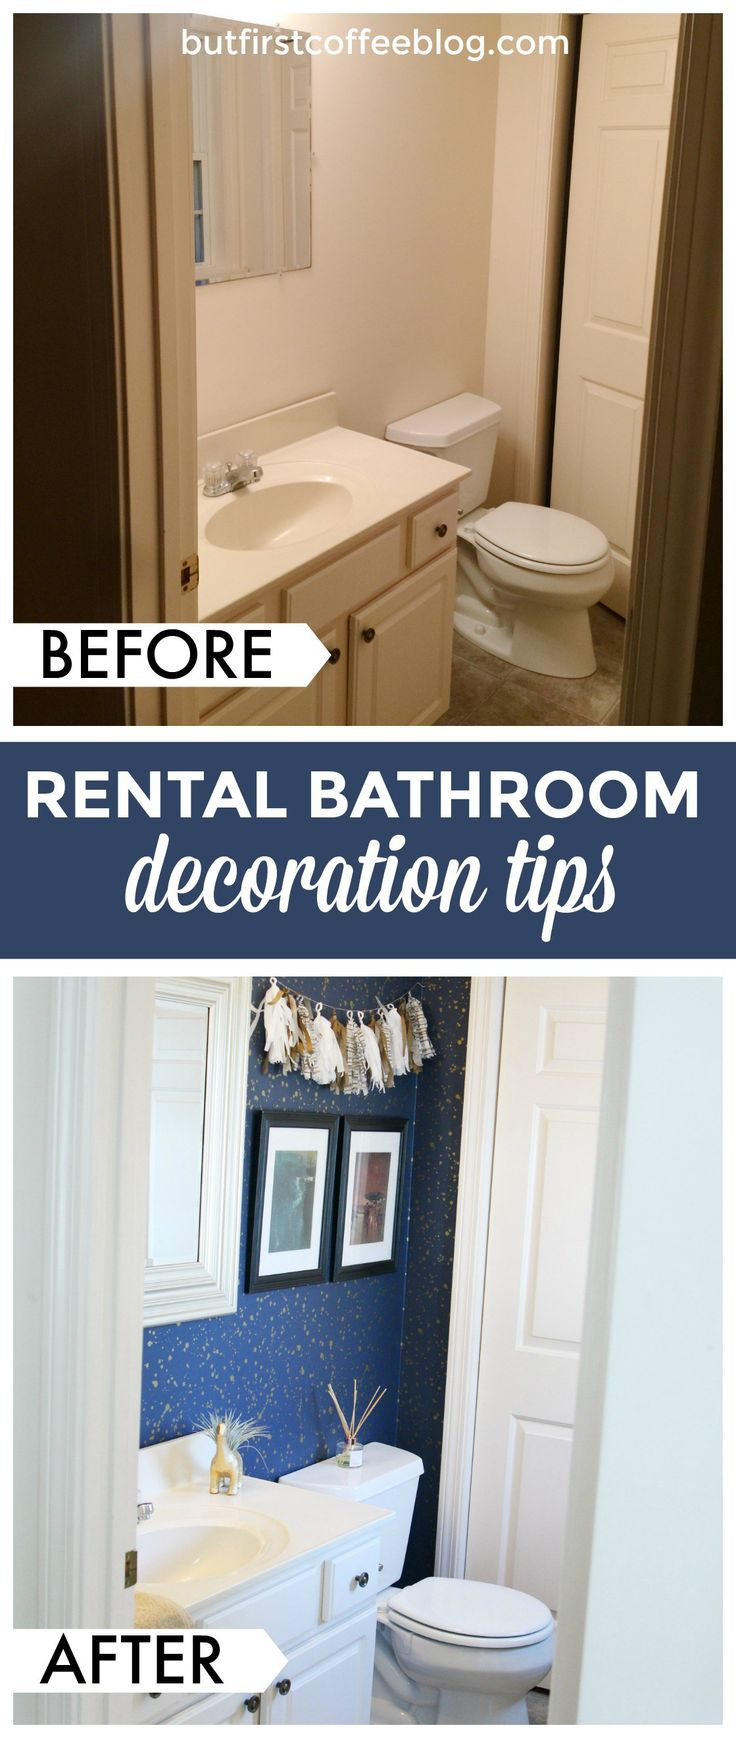 Rental apartment bathroom ideas - How To Decorate Your Rental Space Bathroom Rental Decor